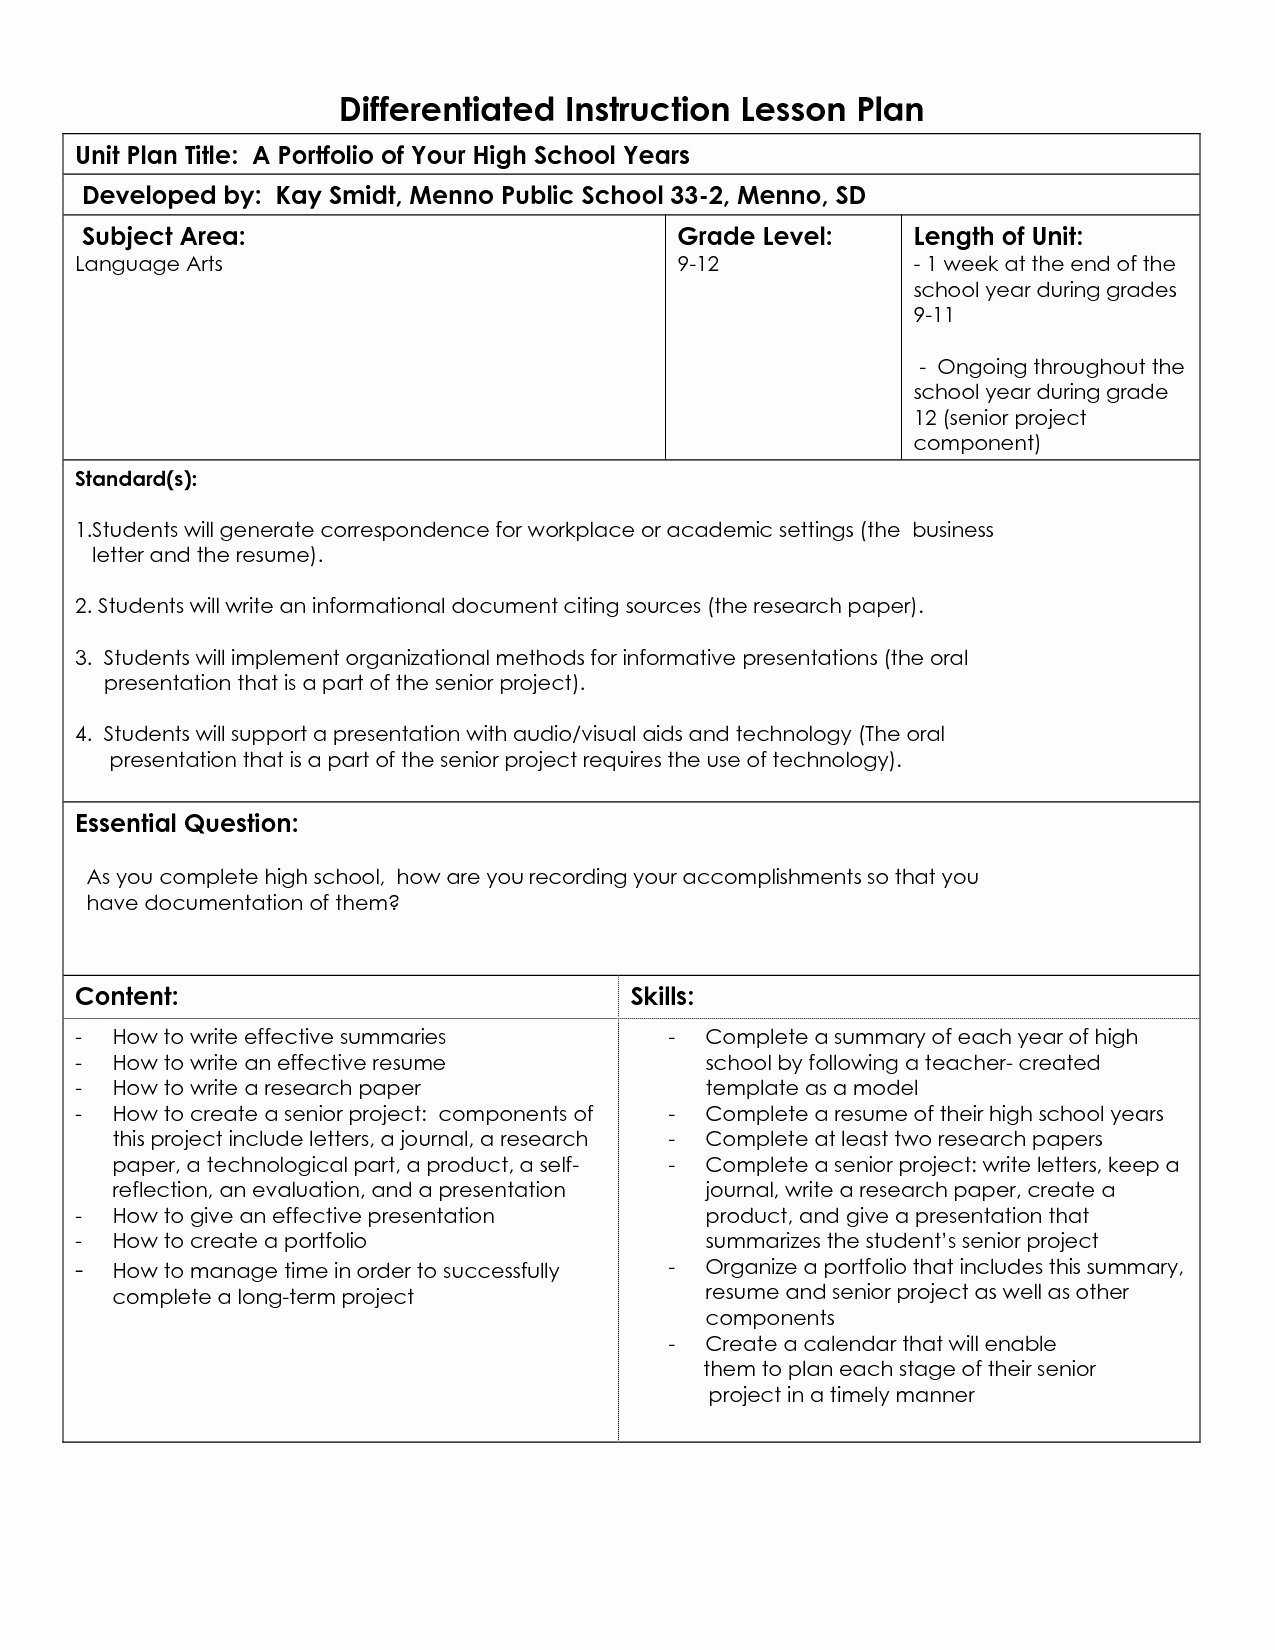 Direct Instruction Lesson Plan Template Lovely Differentiated Instruction Lesson Plan Examples